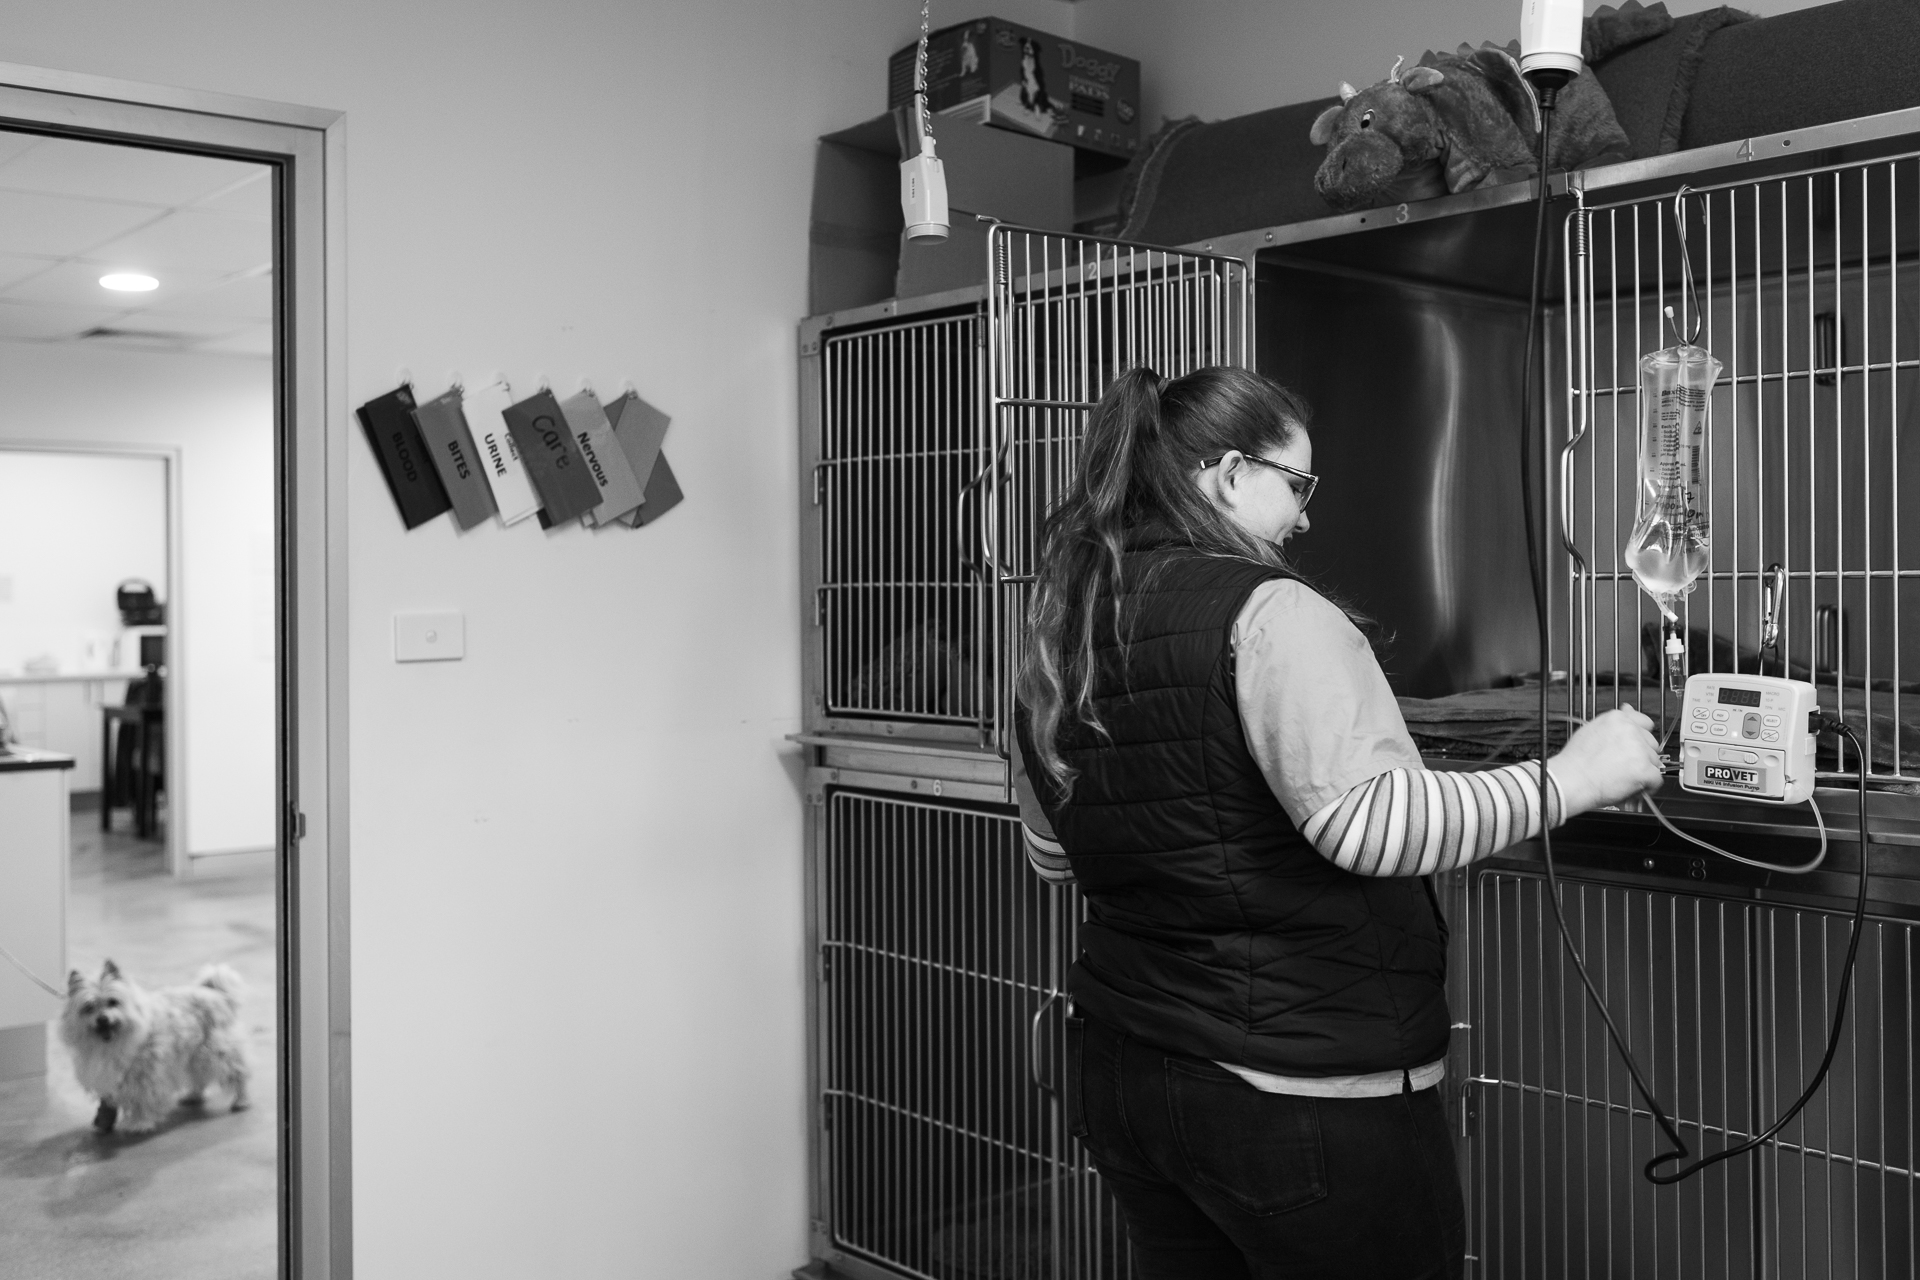 Nurse Kelsey Savage cleans the kennel of a dog who stayed overnight after surgery the previous day.  6 July, 2018.